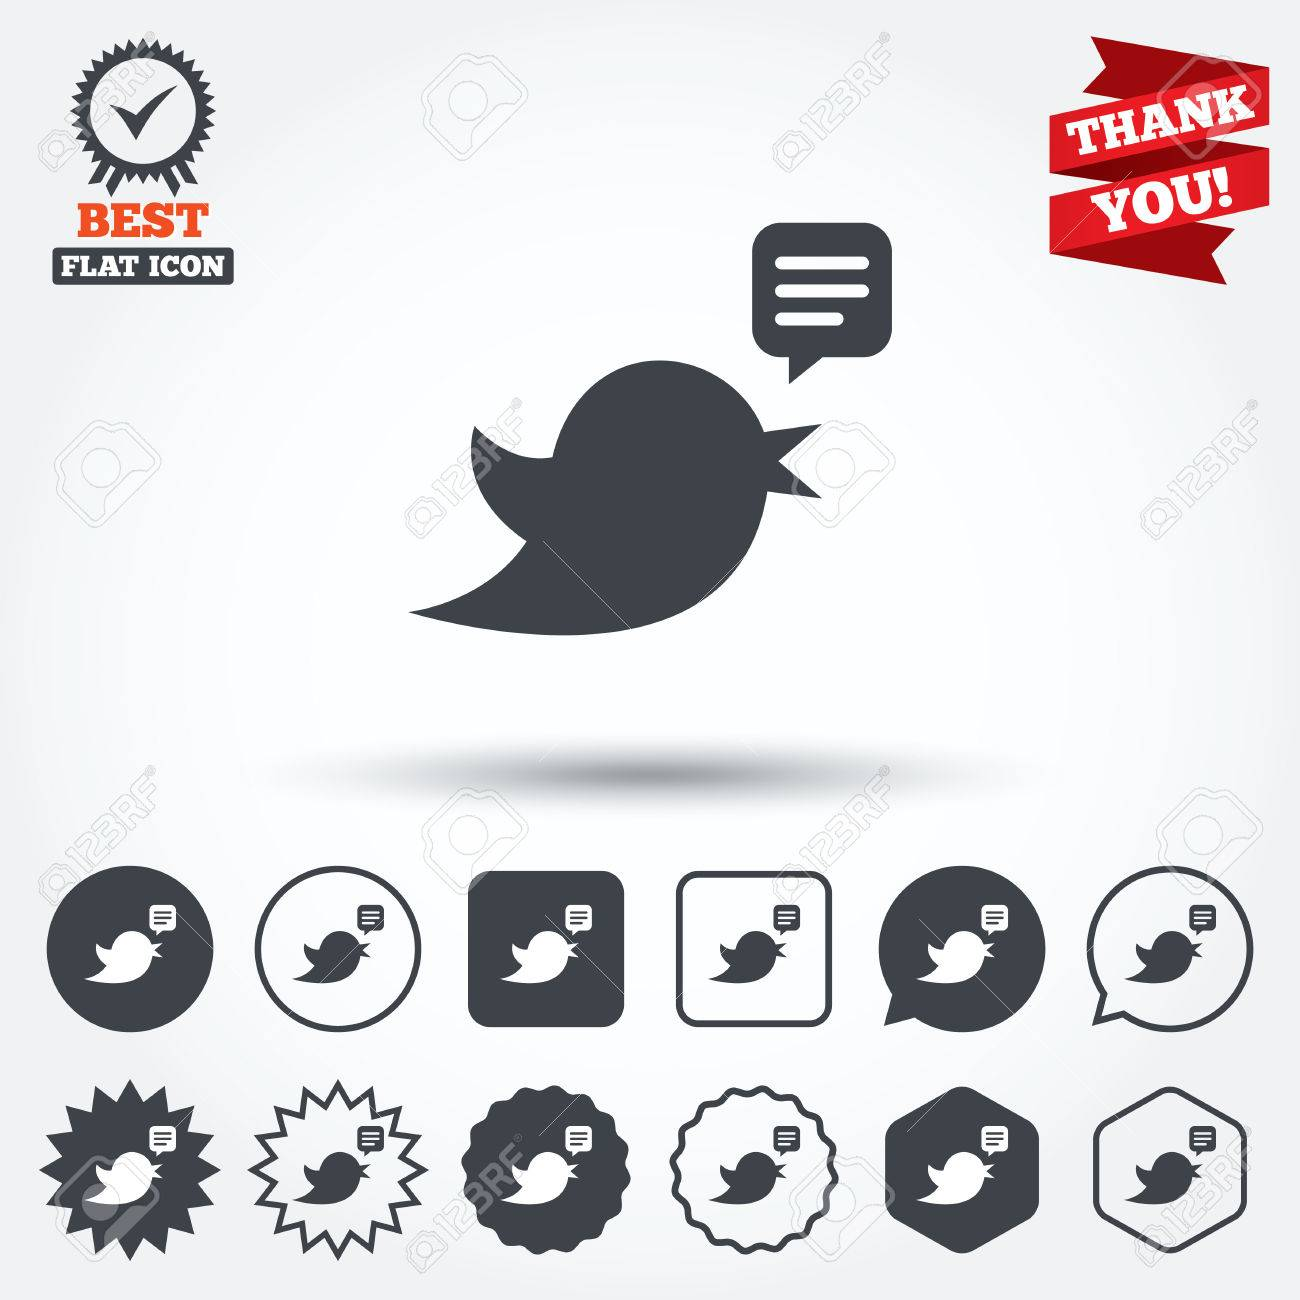 Bird Icon Social Media Sign Short Messages Twitter Retweet